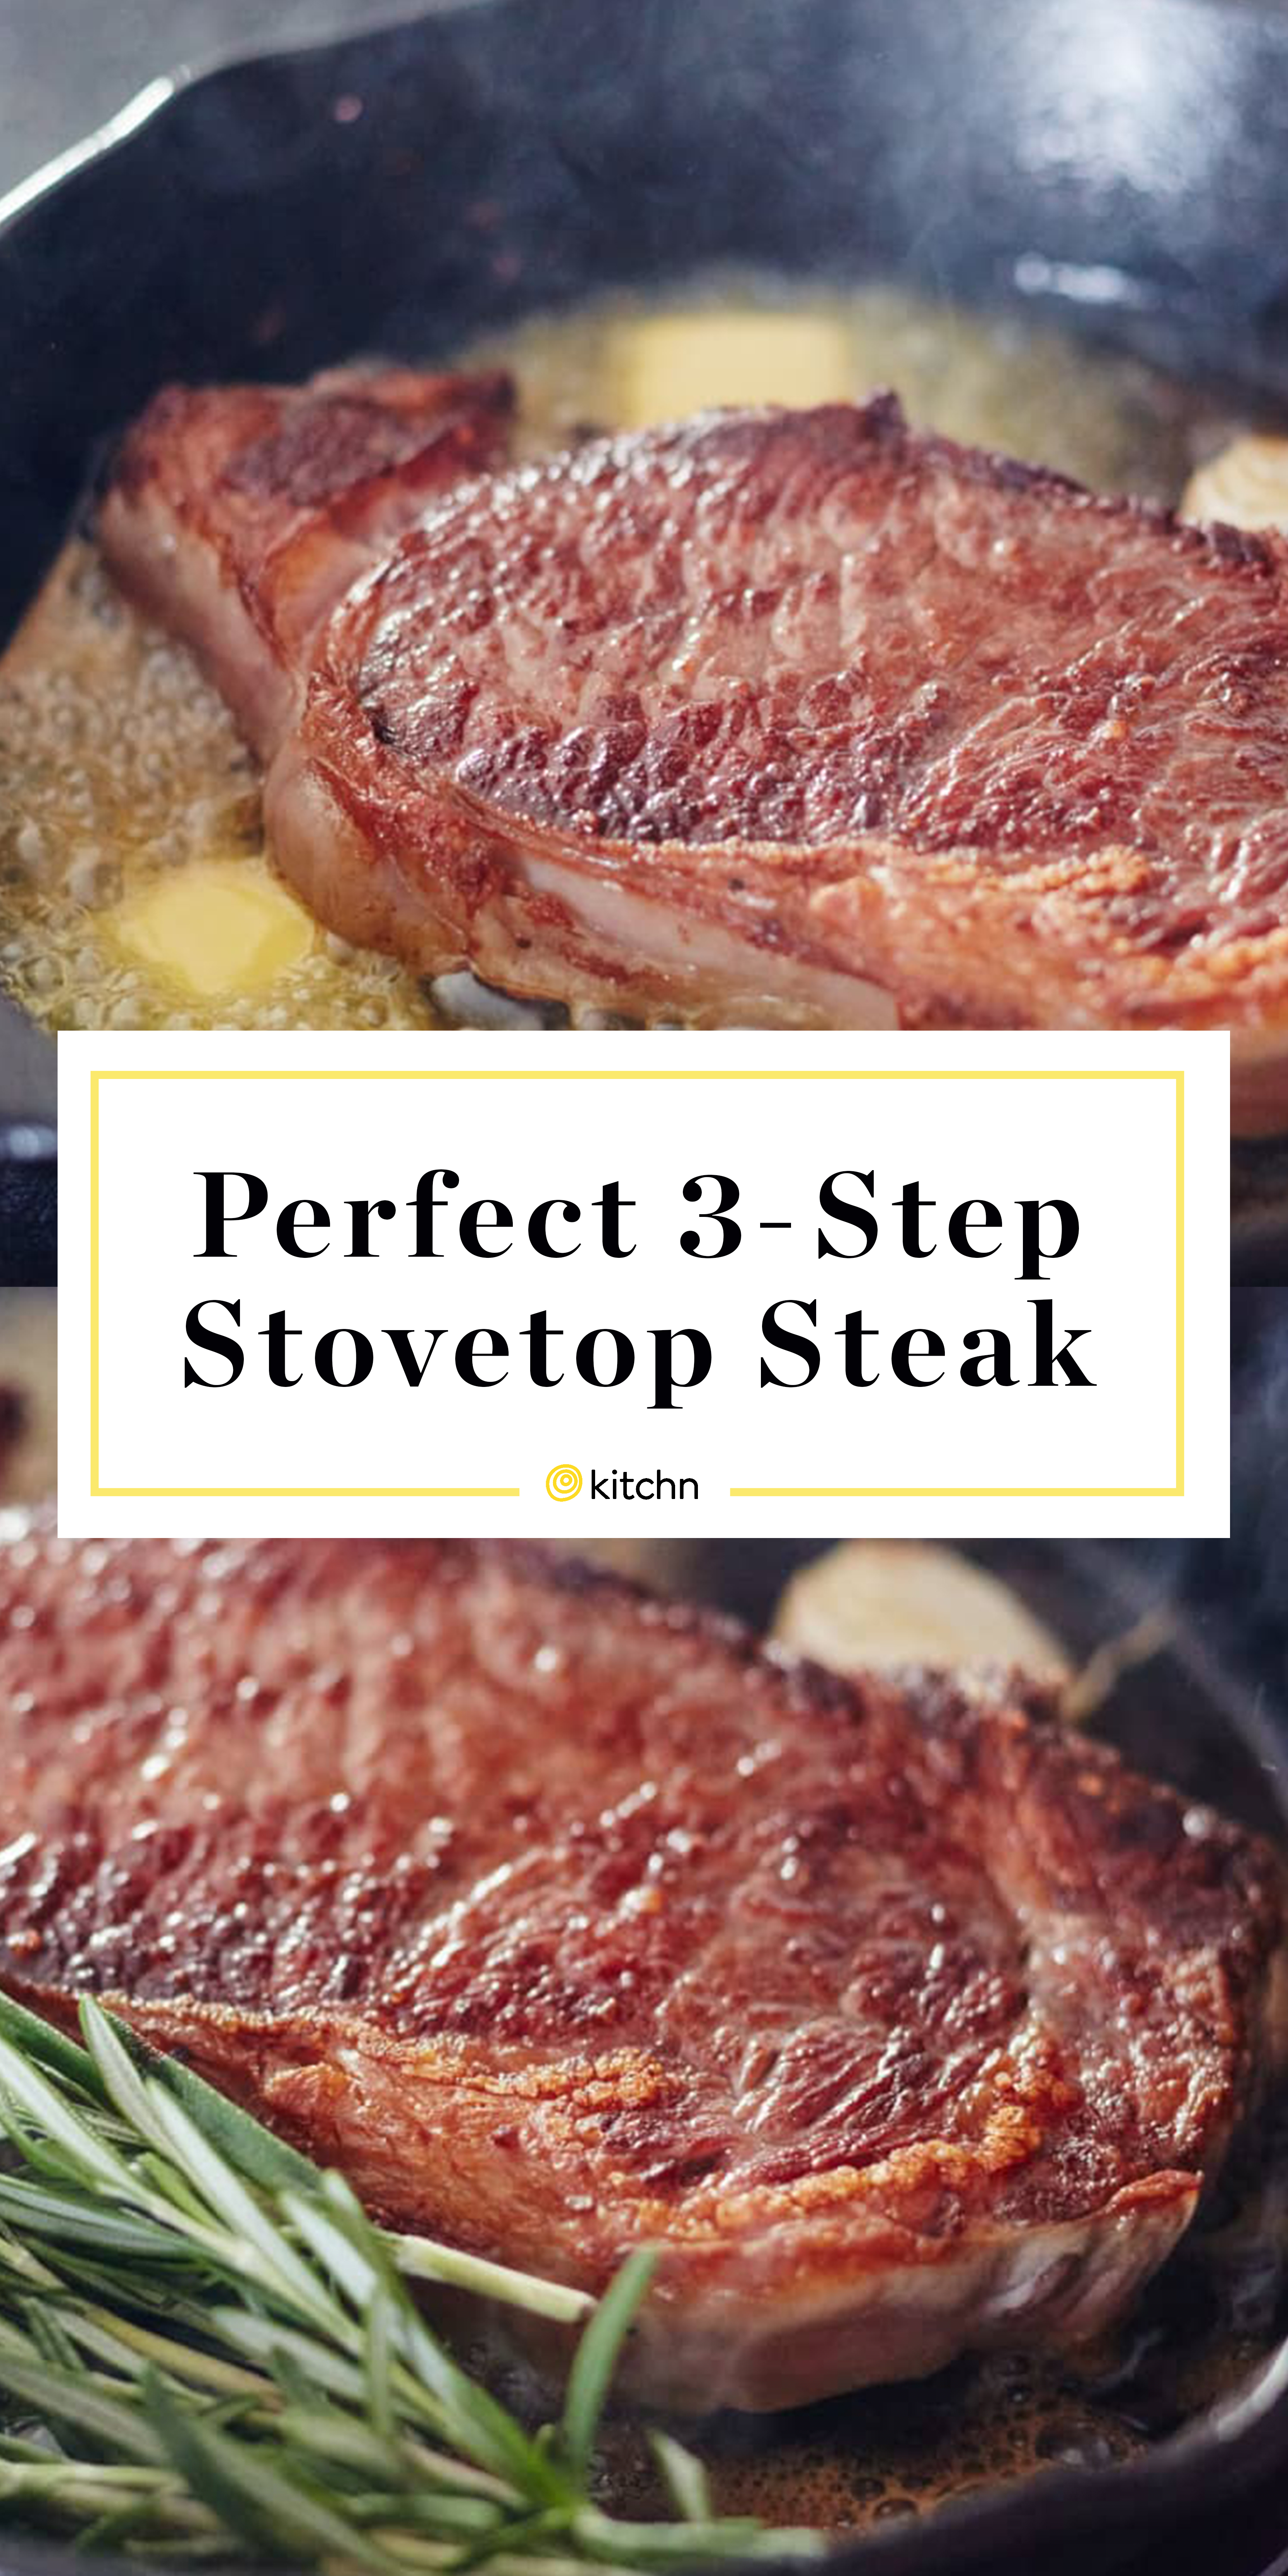 How To Cook Steak On The Stove The Simplest Easiest Method Kitchn